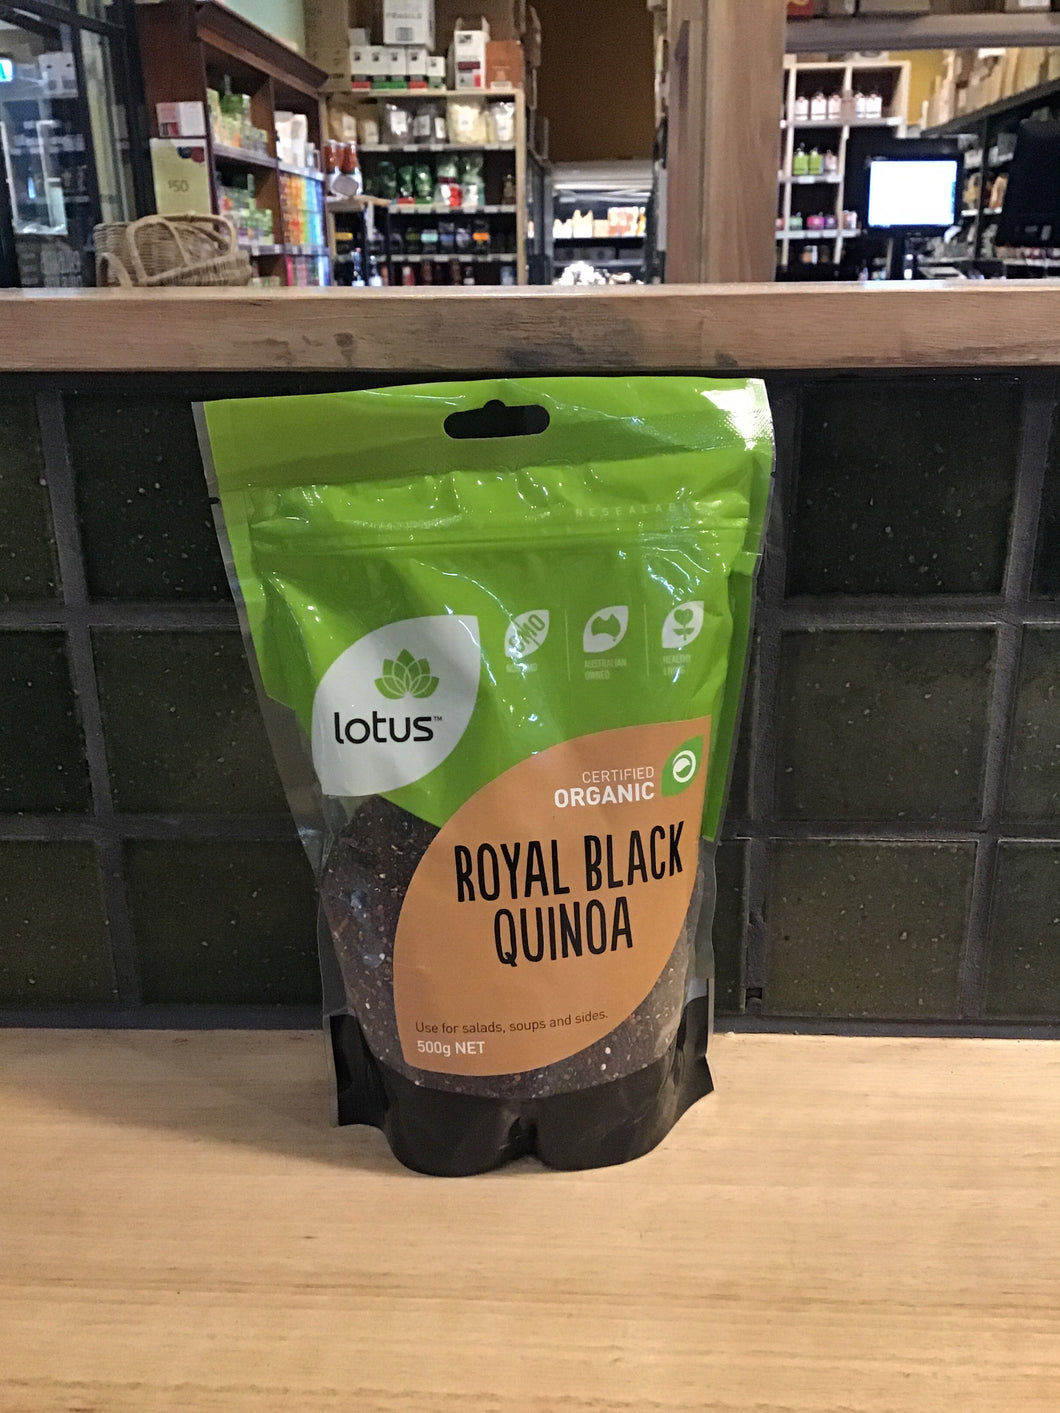 Lotus Quinoa Royal Black 500g